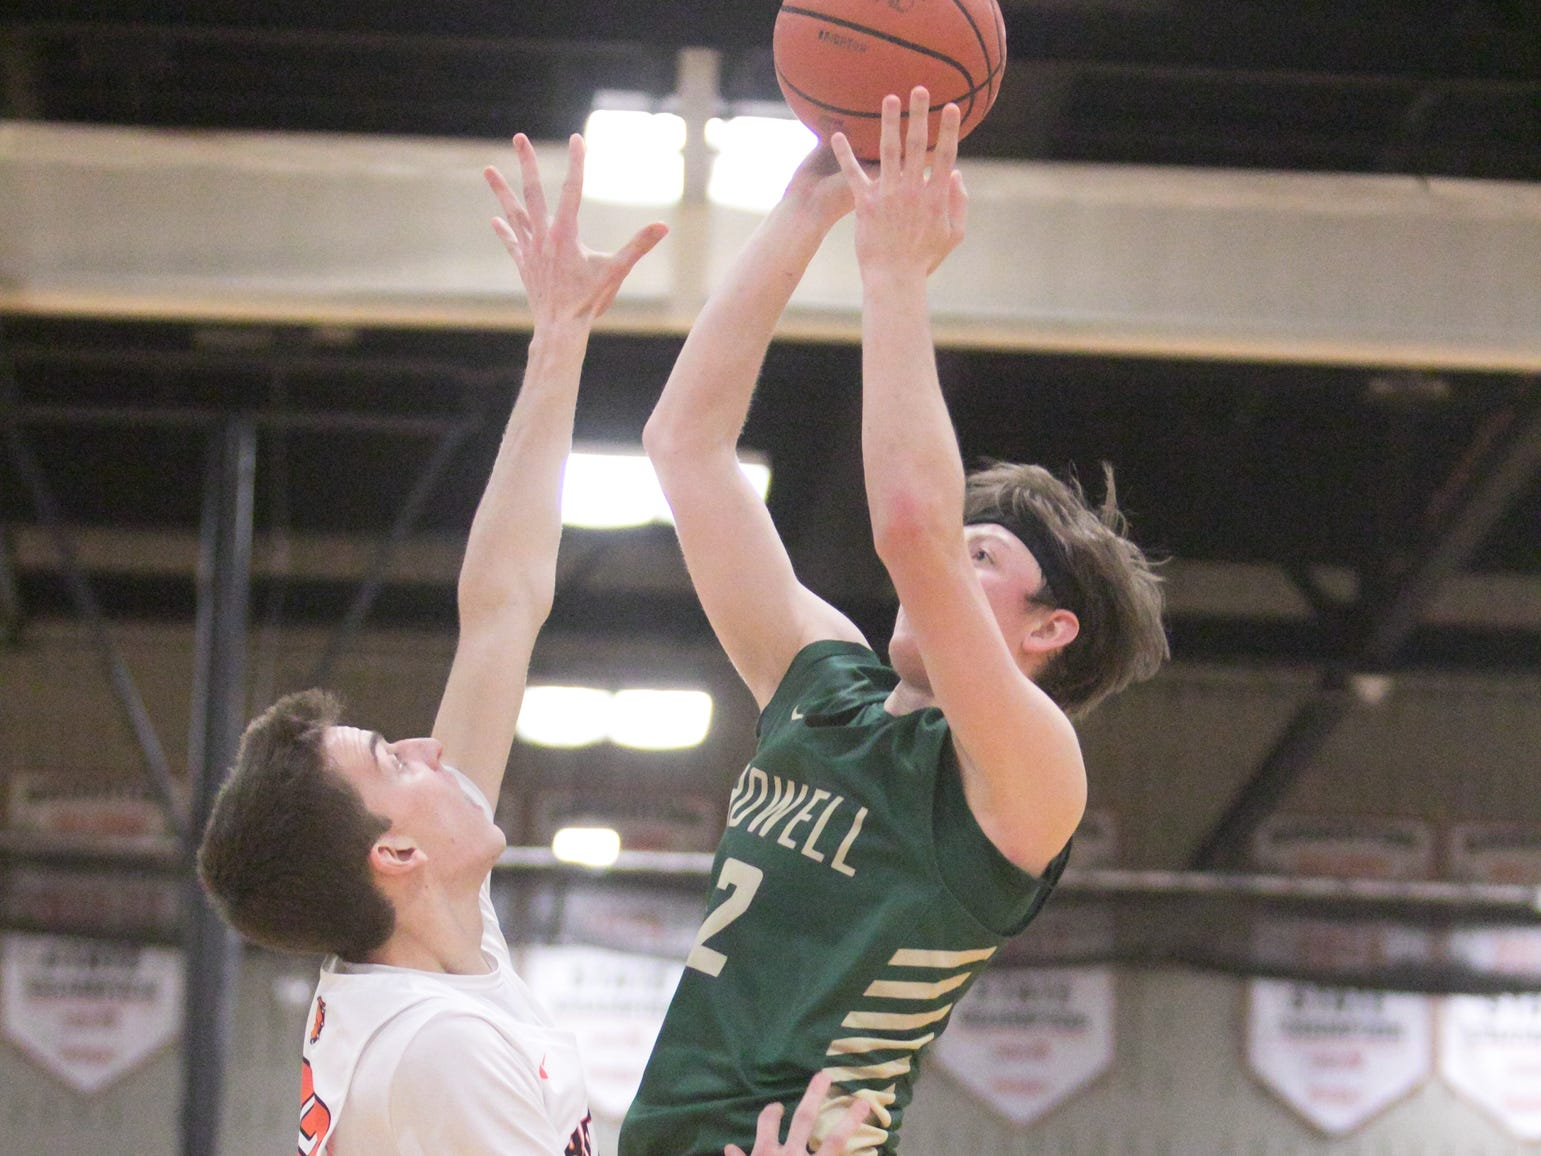 Luke Russo of Howell hits his target in the third quarter of the game at Brighton Tuesday, Jan. 8, 2019.